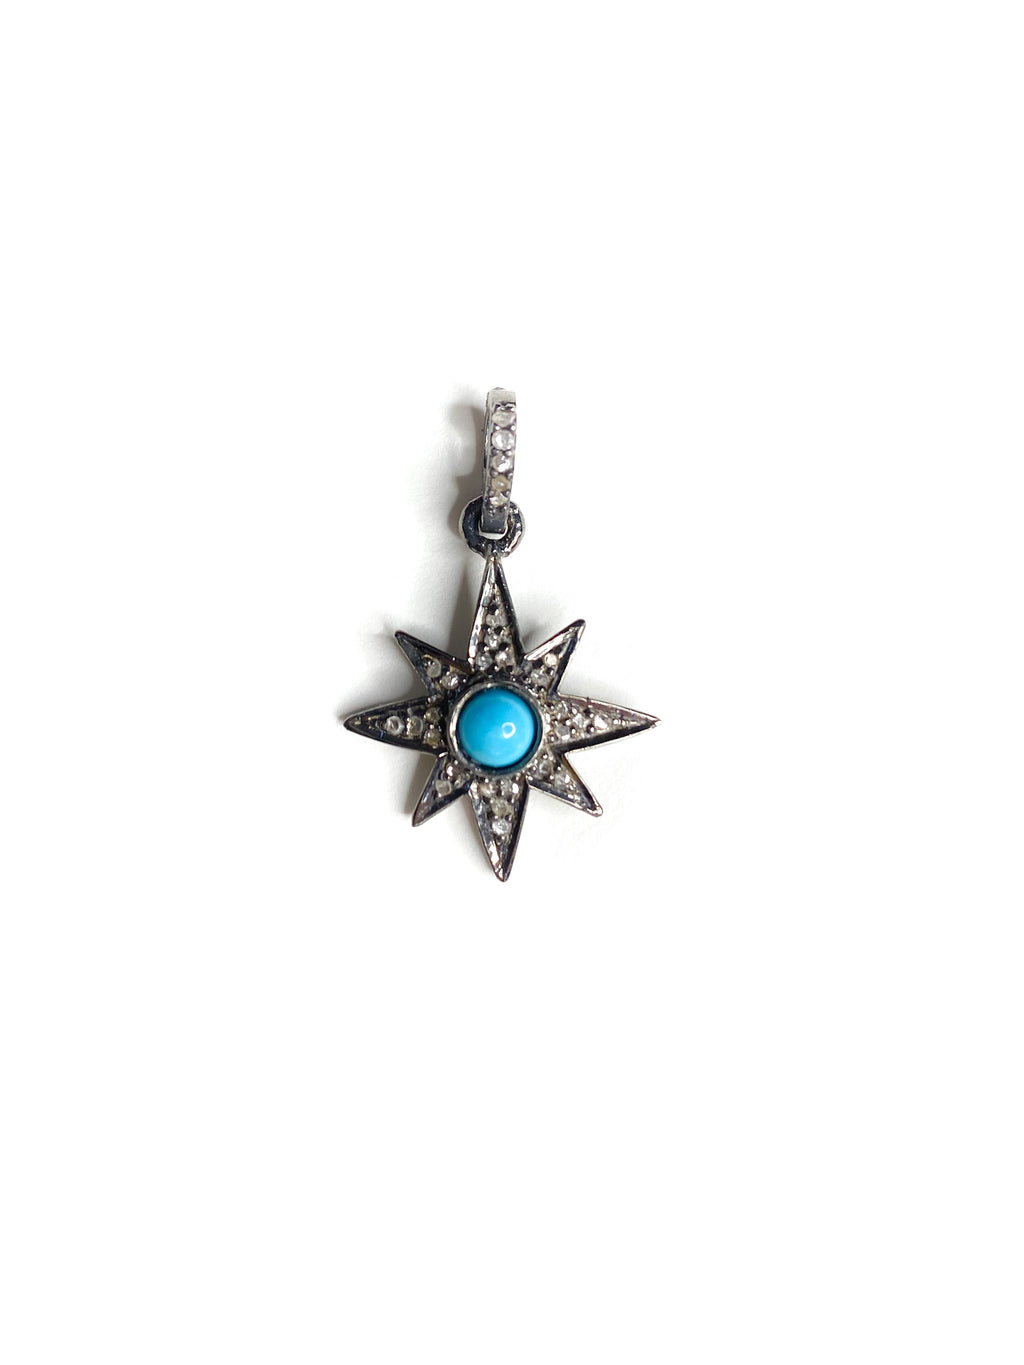 Turquoise set in Pave Diamond mini Starburst